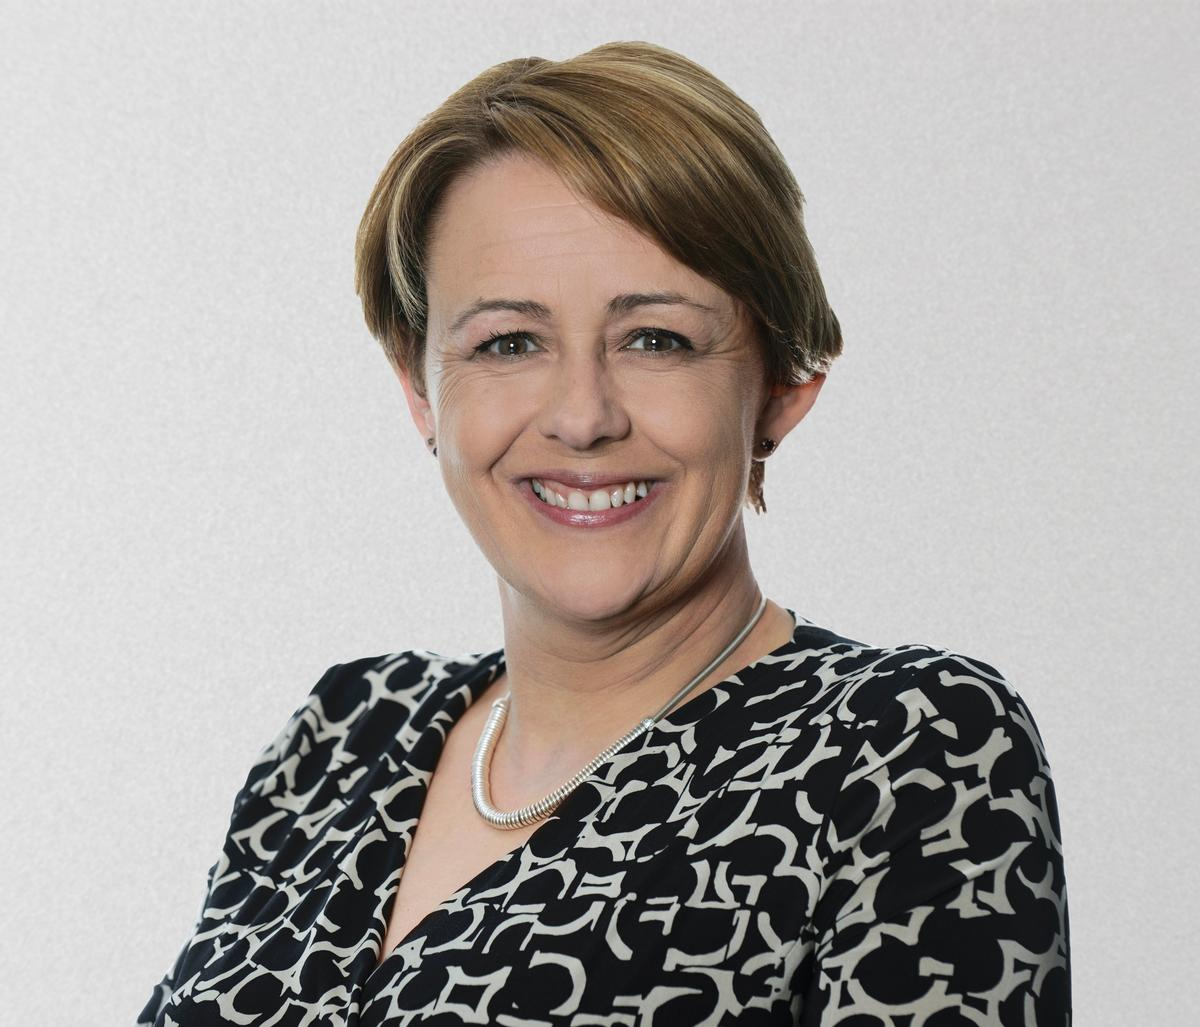 Tanni Grey-Thompson wants the health care sector's focus to shift from treating illnesses to promoting wellness